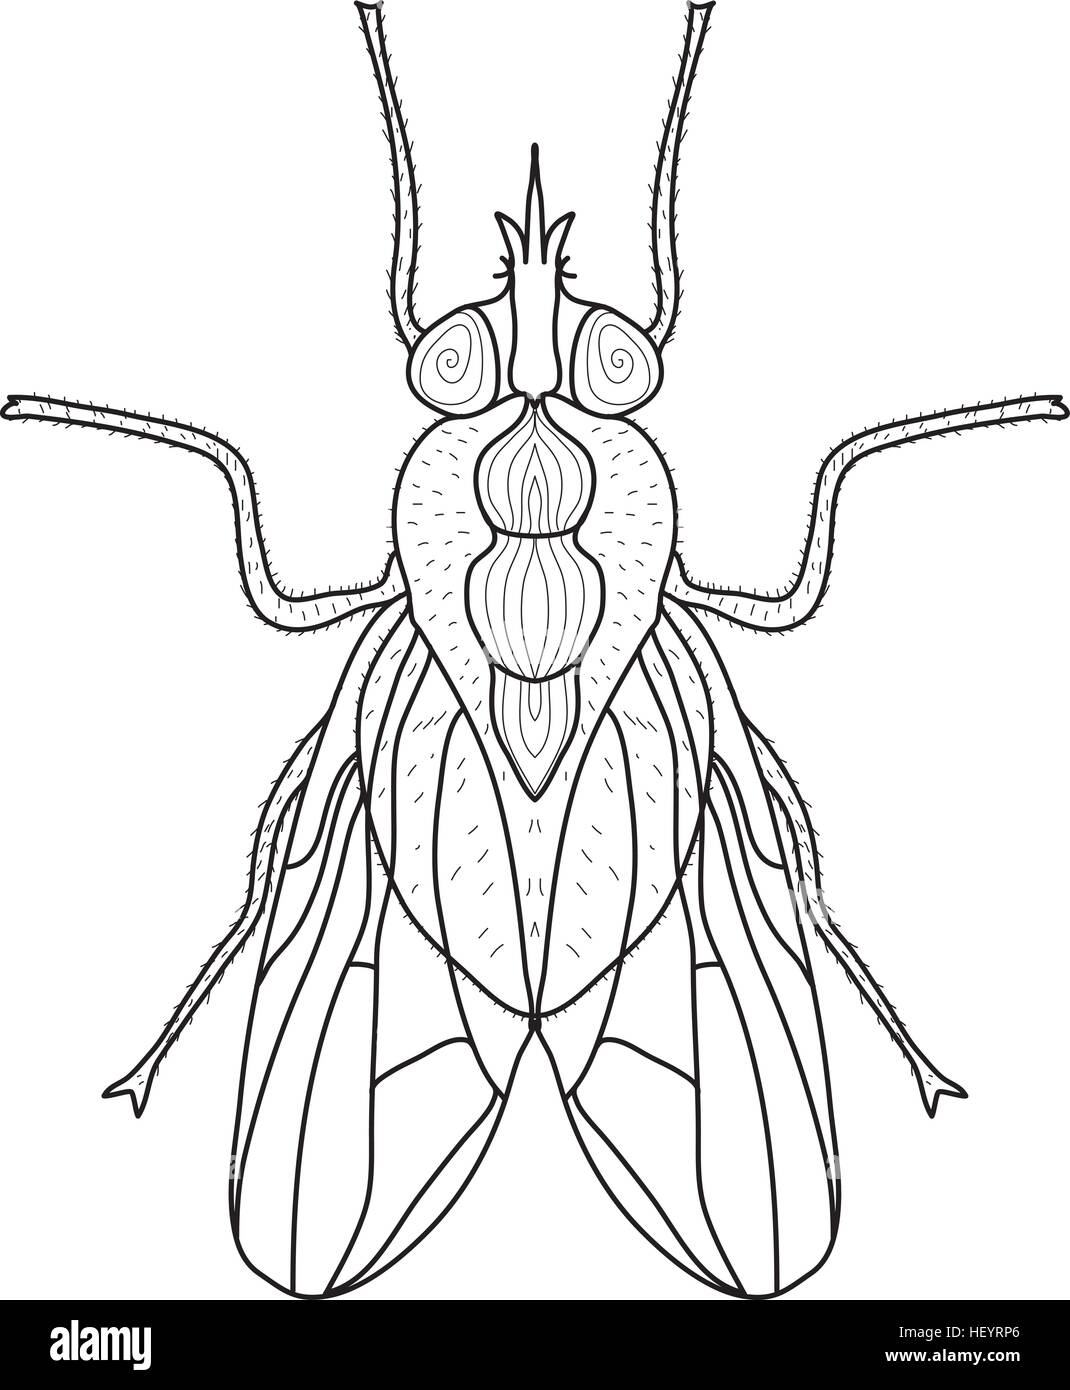 Line Art Vector Illustrator : Fly insect sketch doodle style line art vector